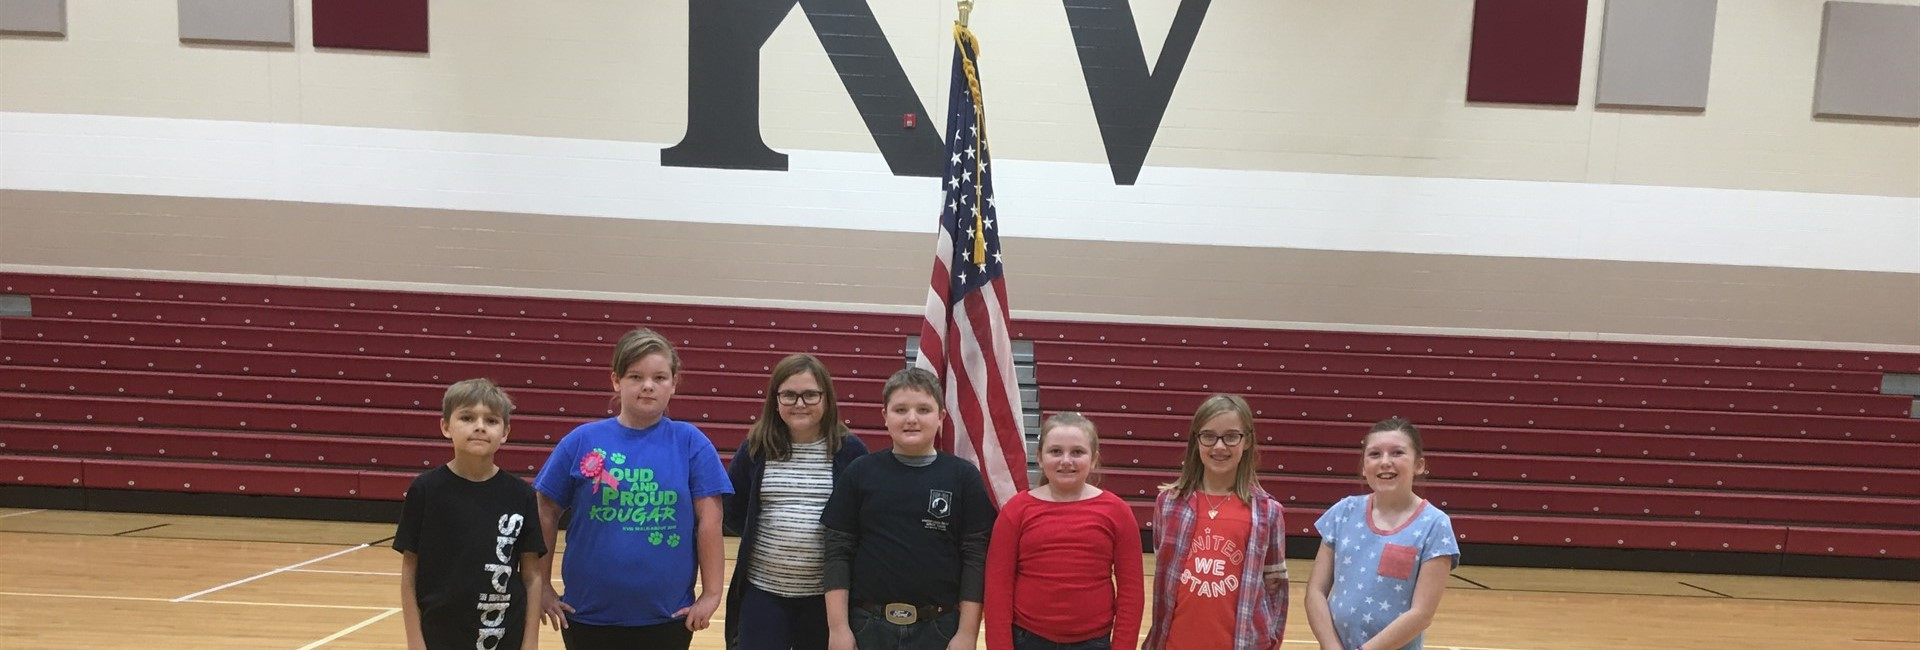 KVIS Veterans Day Program Singers